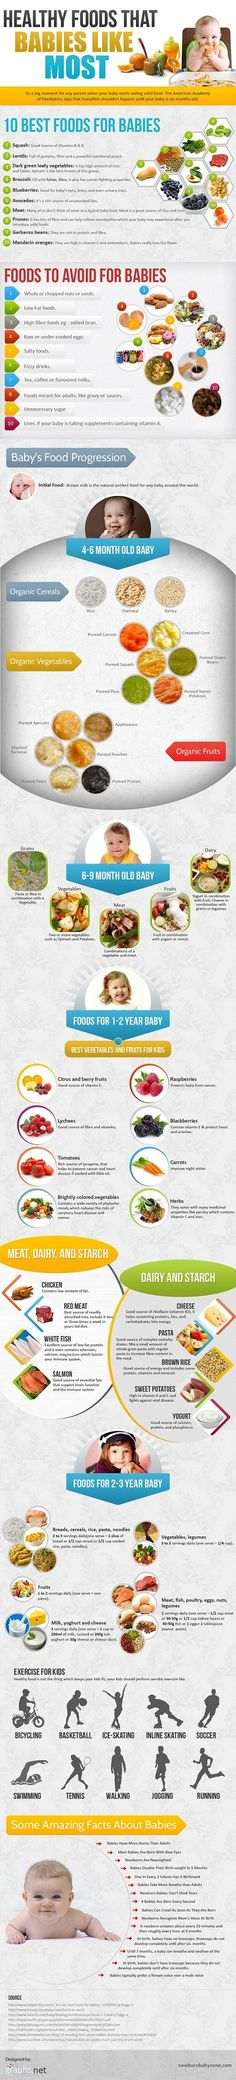 transitioning baby to solids